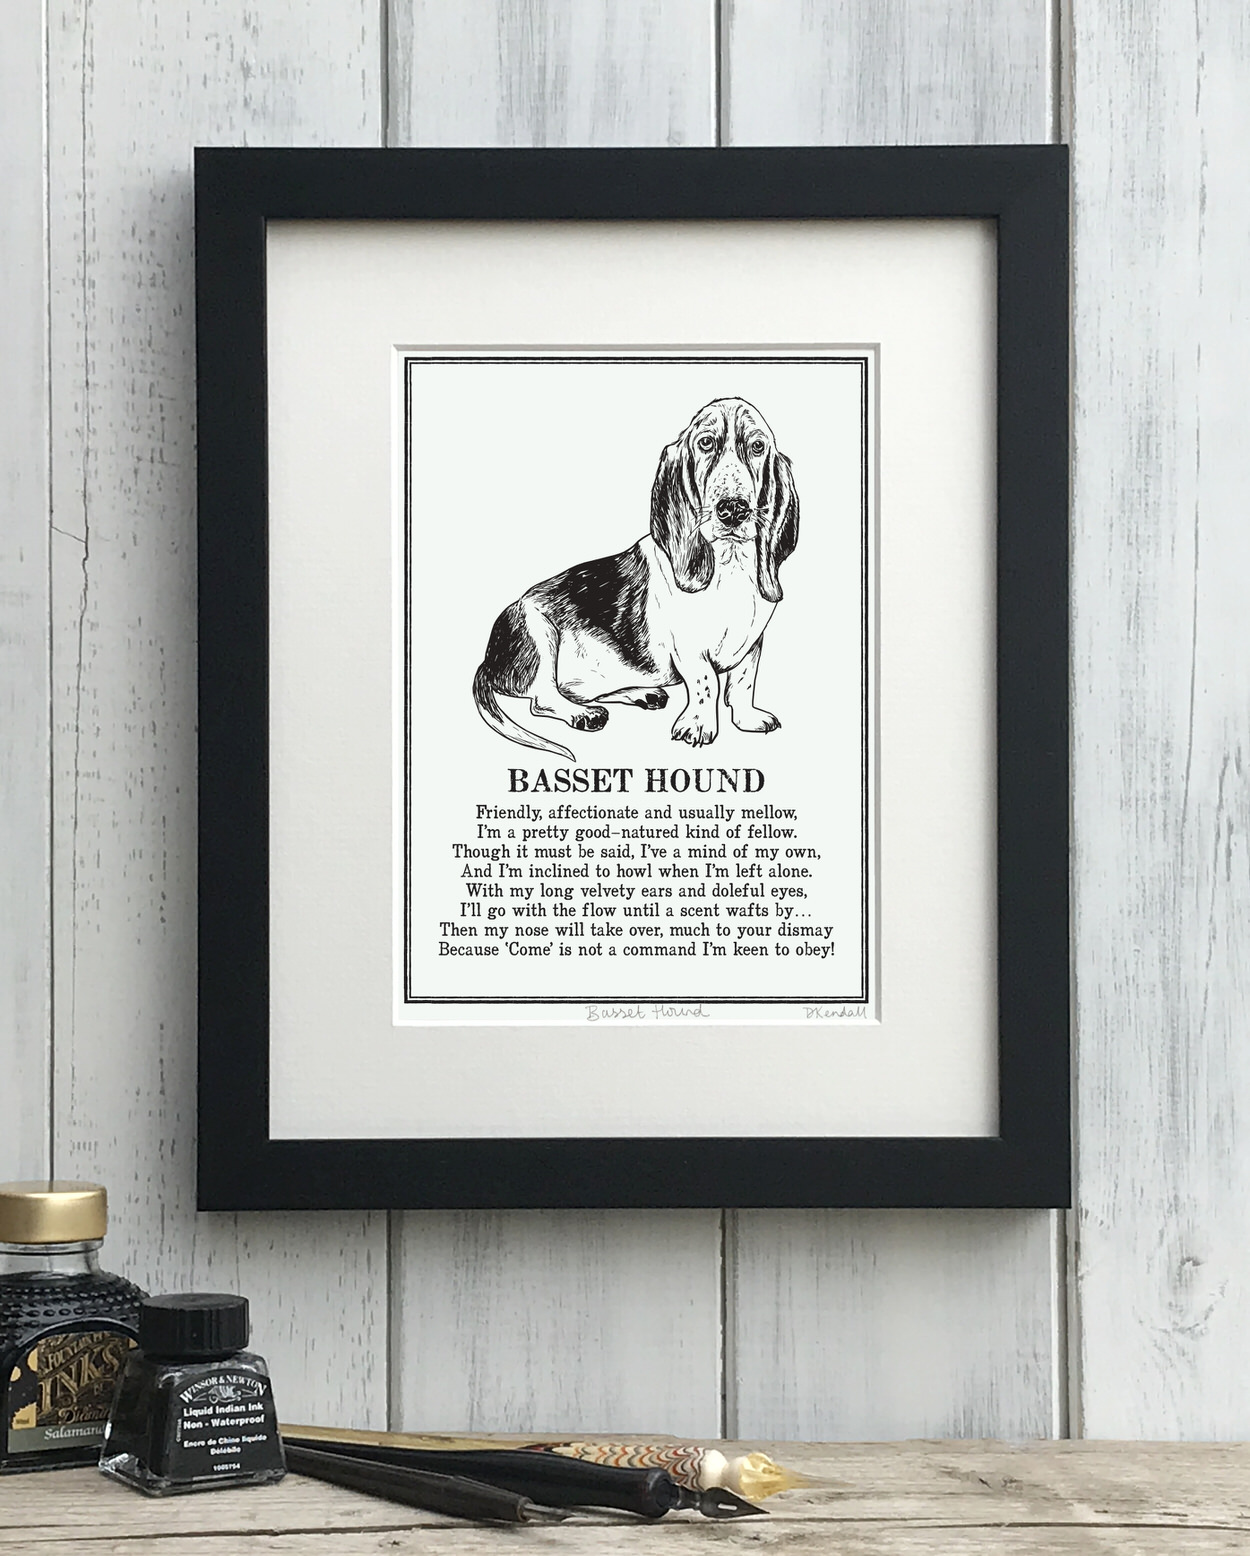 Basset Hound print illustrated poem by The Enlightened Hound